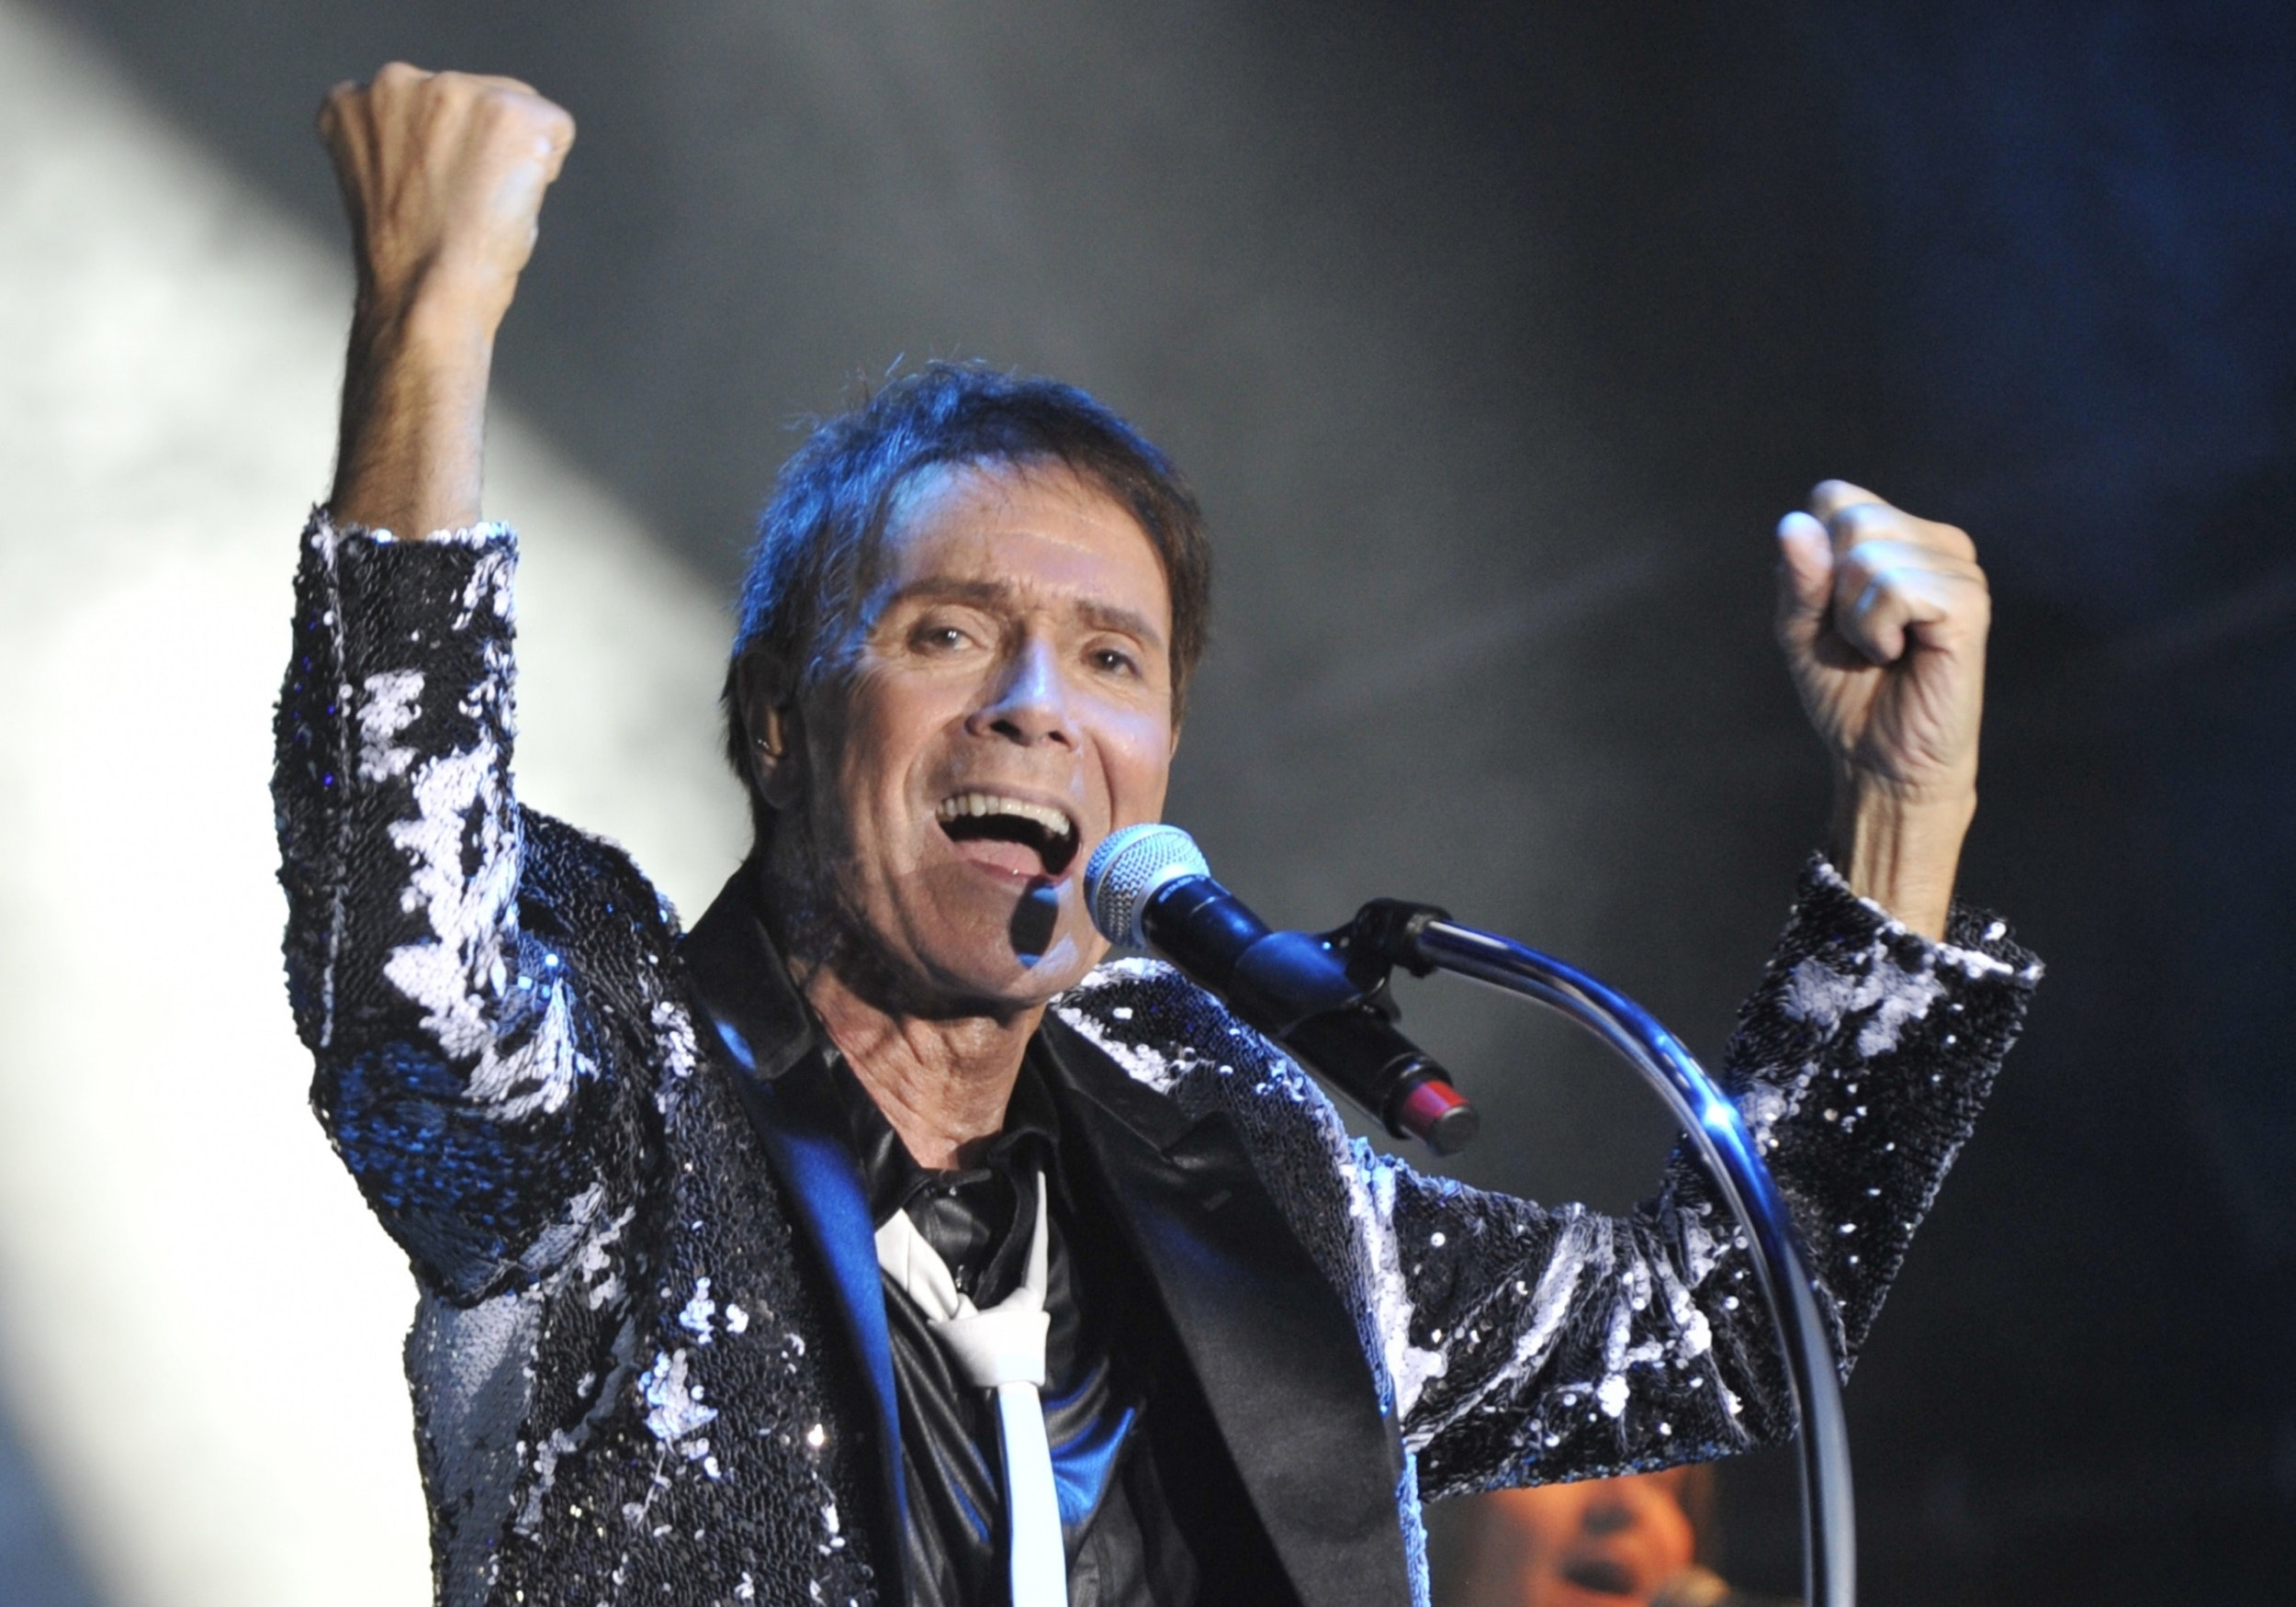 Cliff richard tour dates pic 567